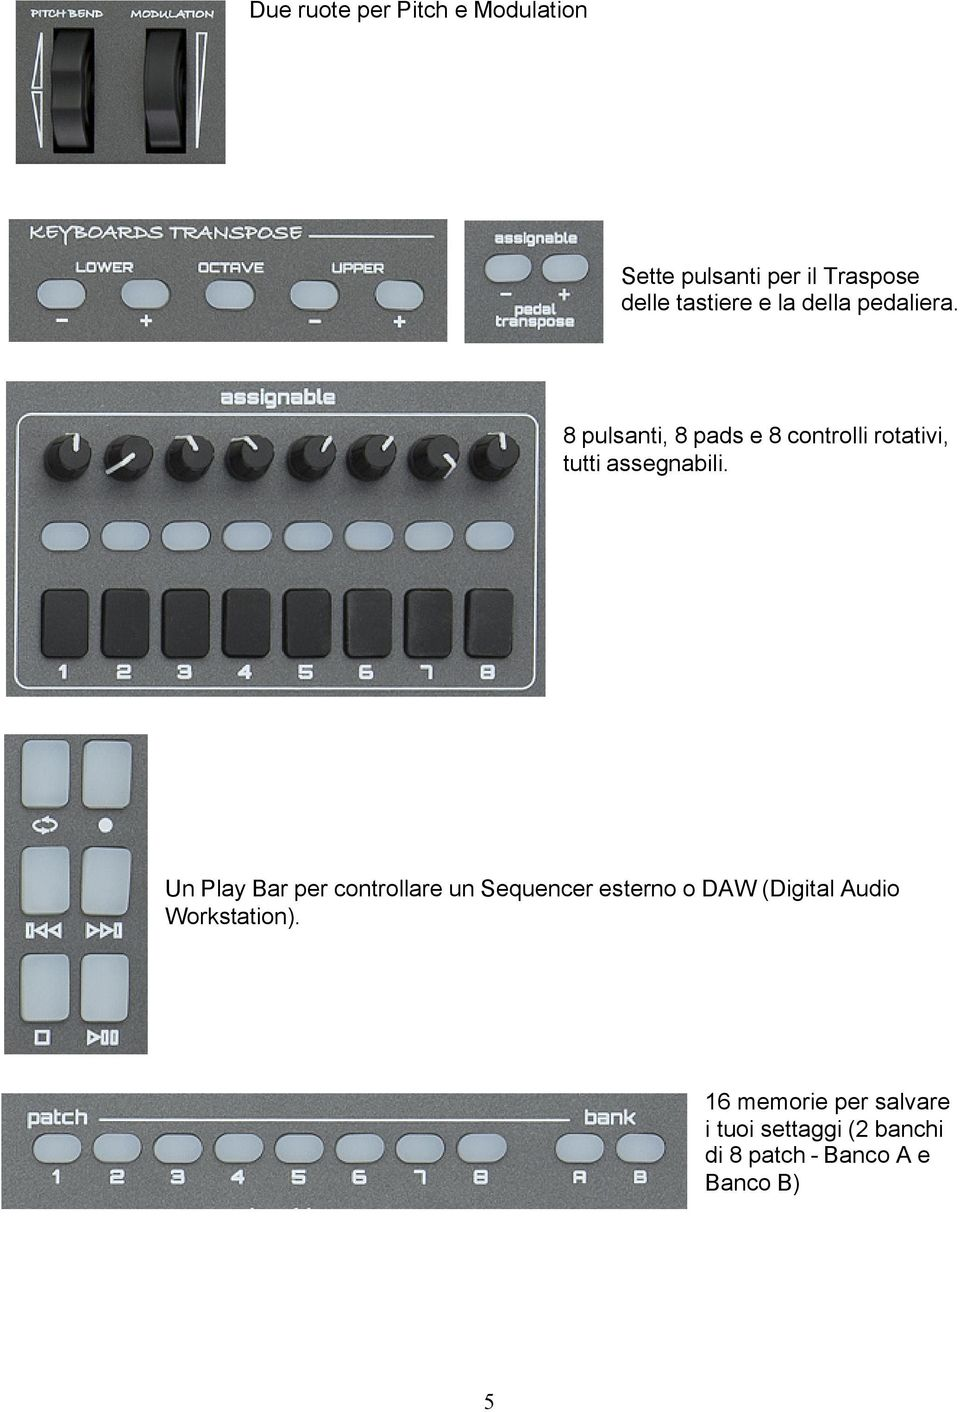 Un Play Bar per controllare un Sequencer esterno o DAW (Digital Audio Workstation).